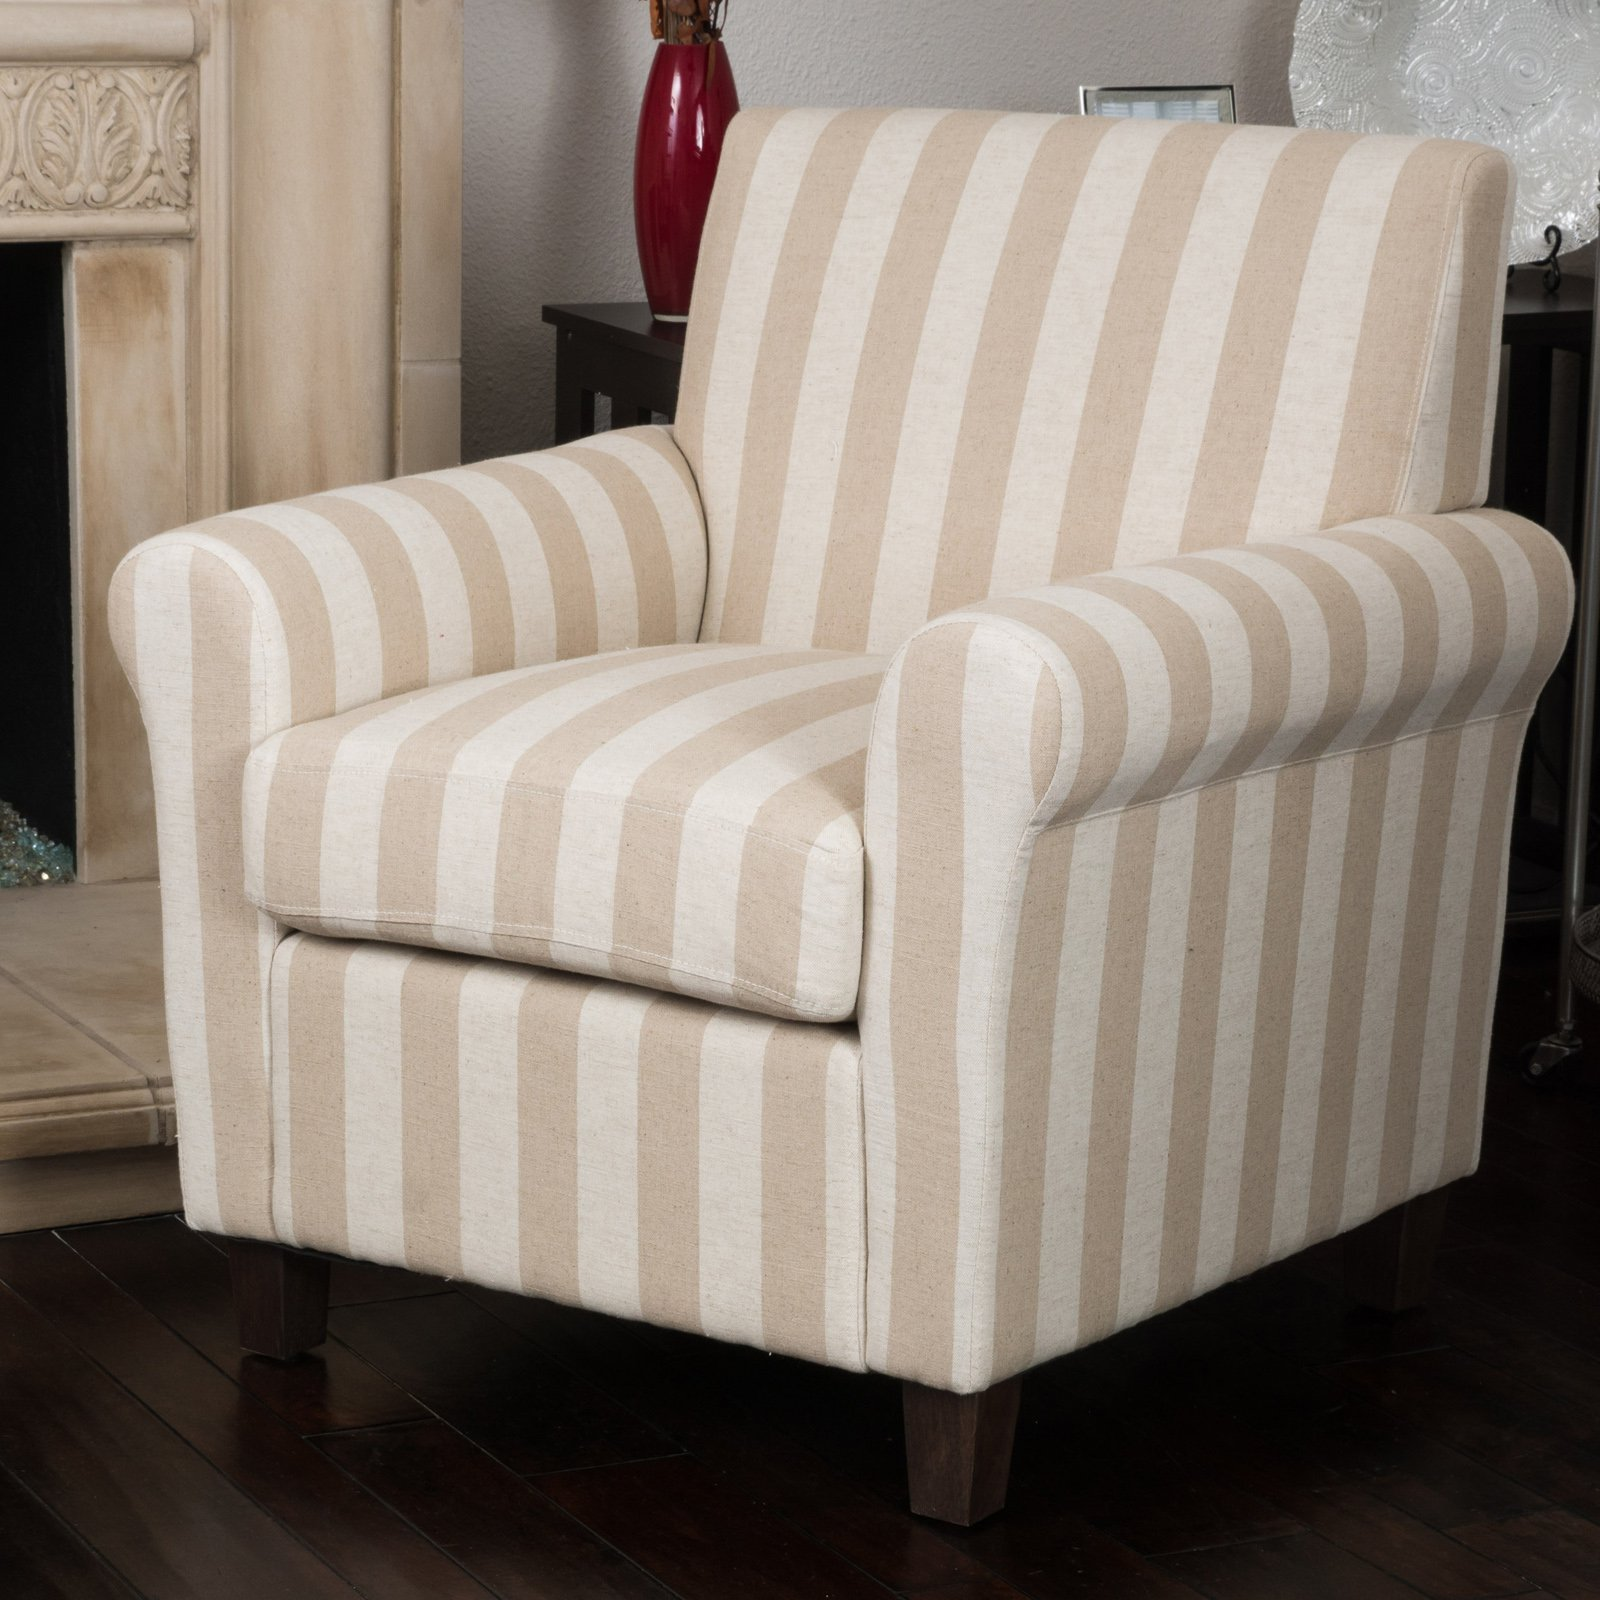 Best Selling Home Brunswick Striped Club Chair by Overstock